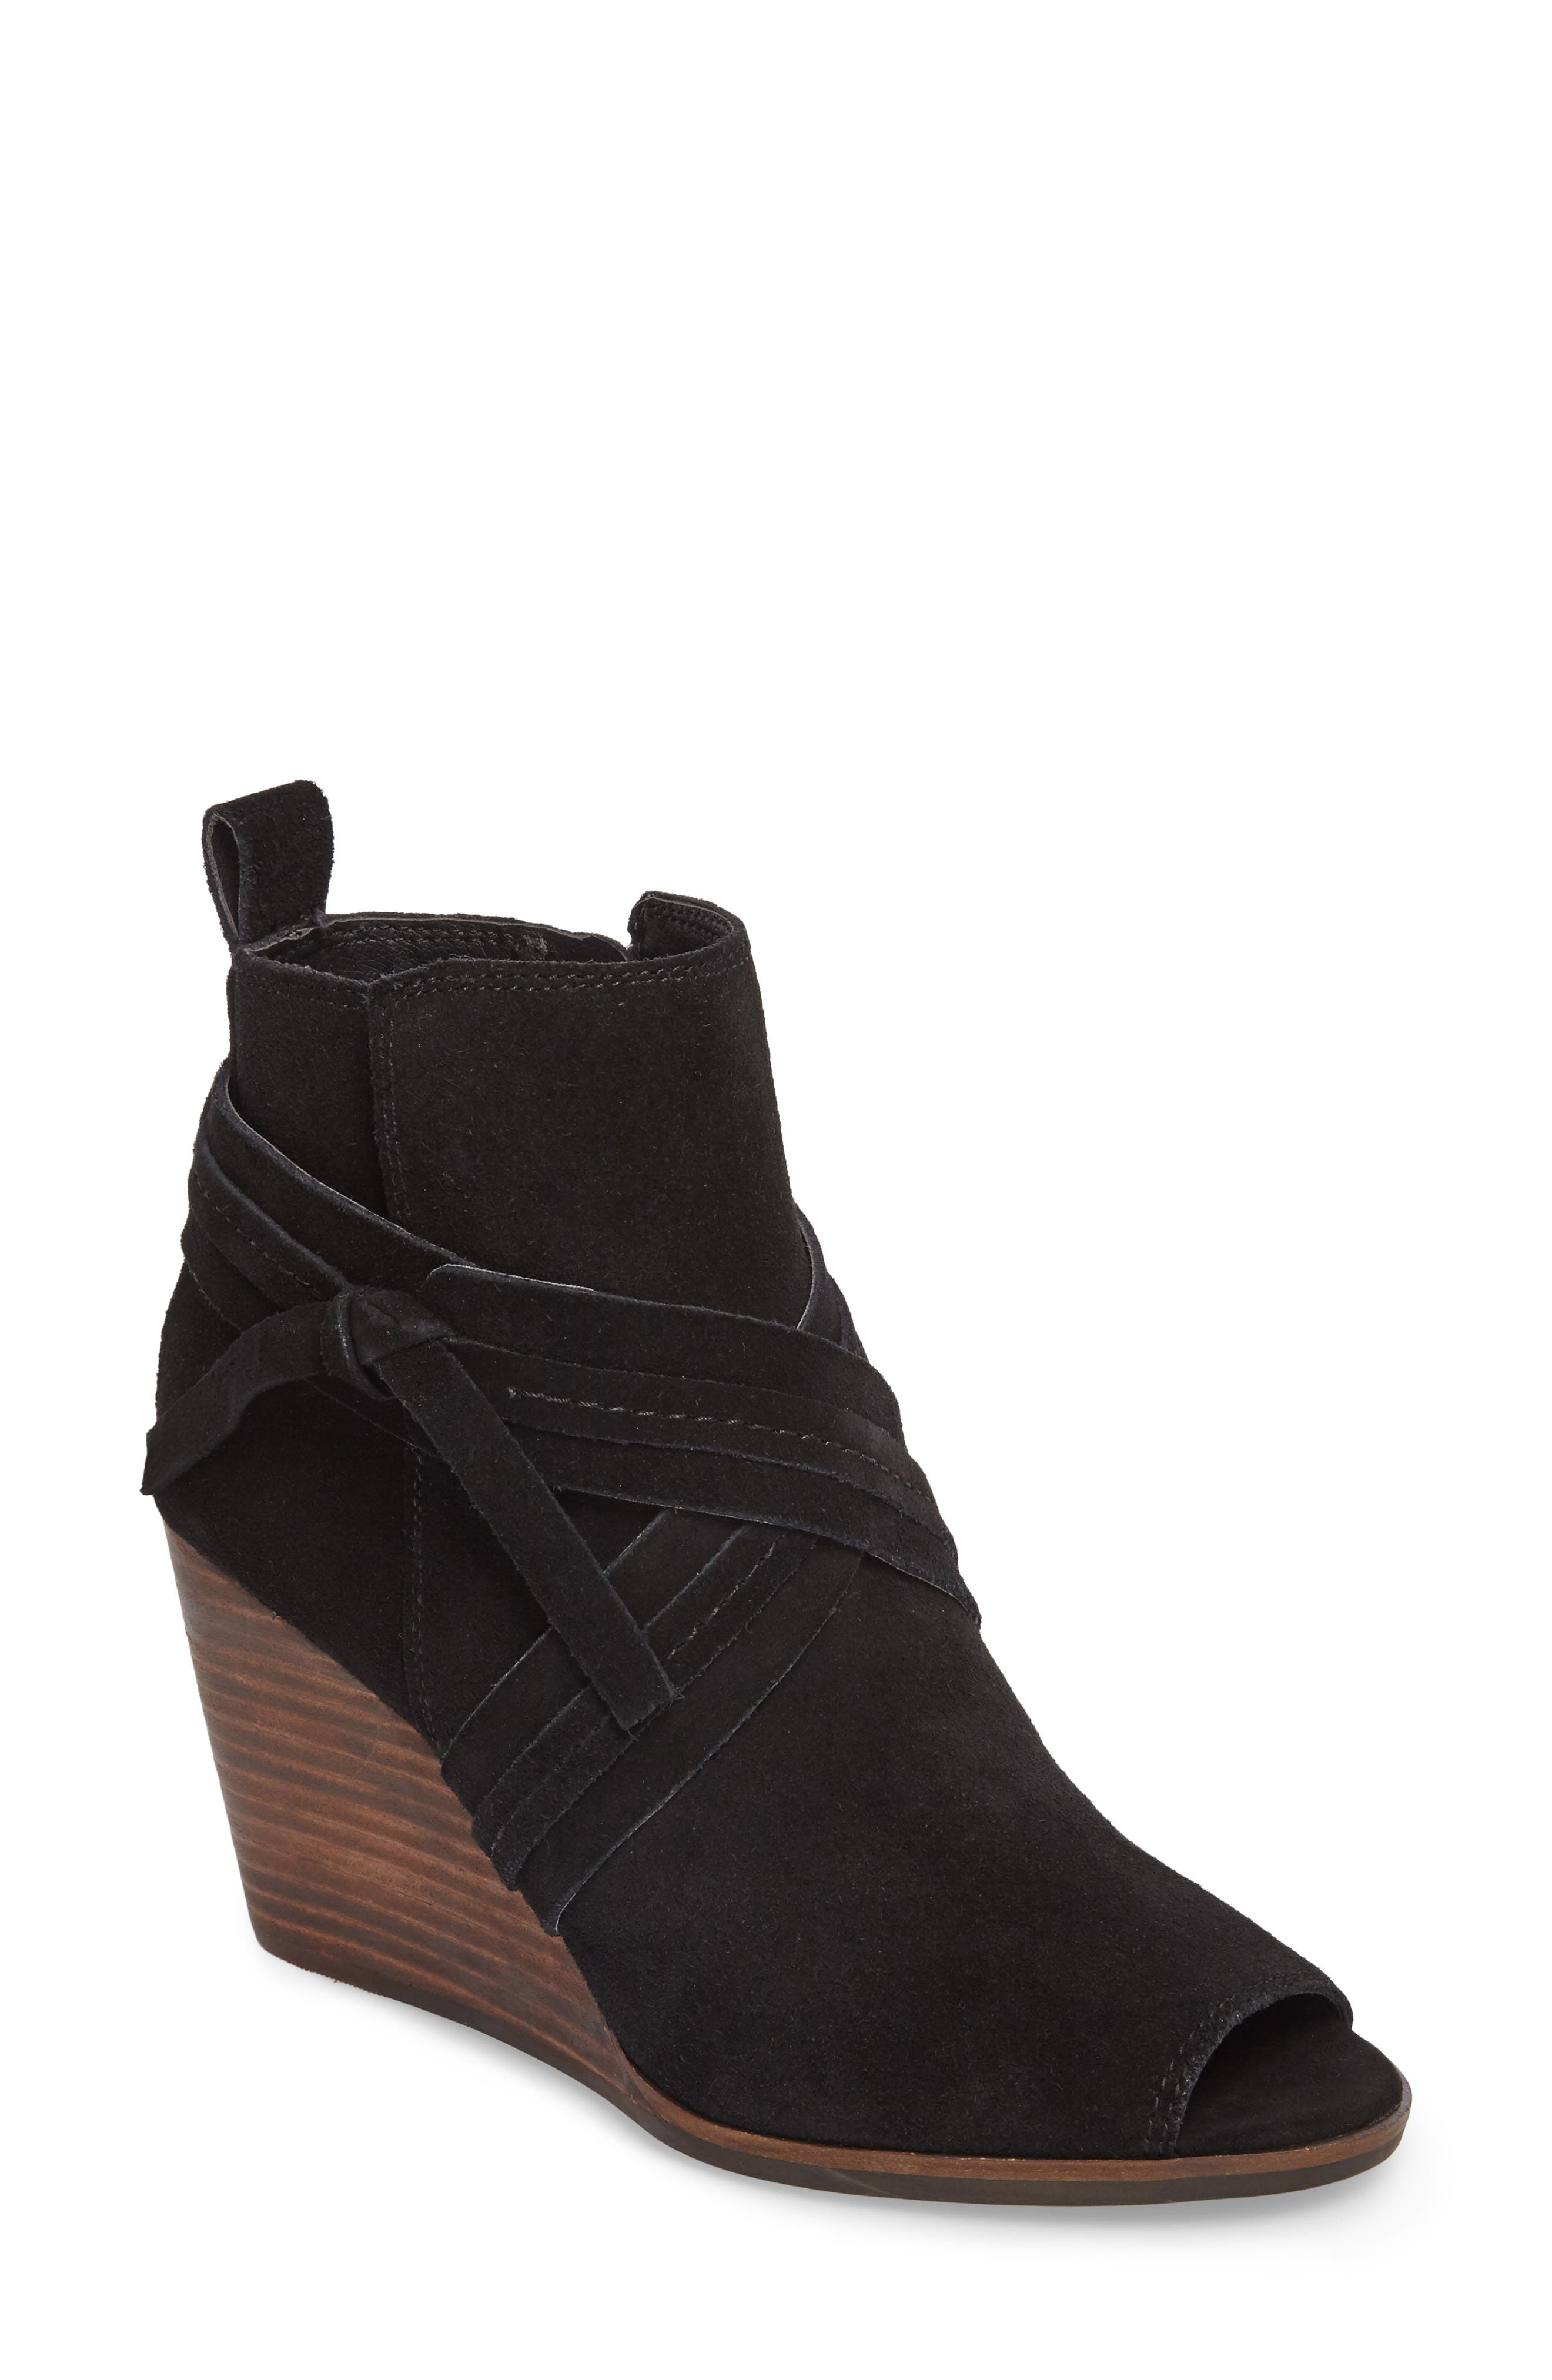 Udom Wedge Bootie,                             Main thumbnail 1, color,                             001